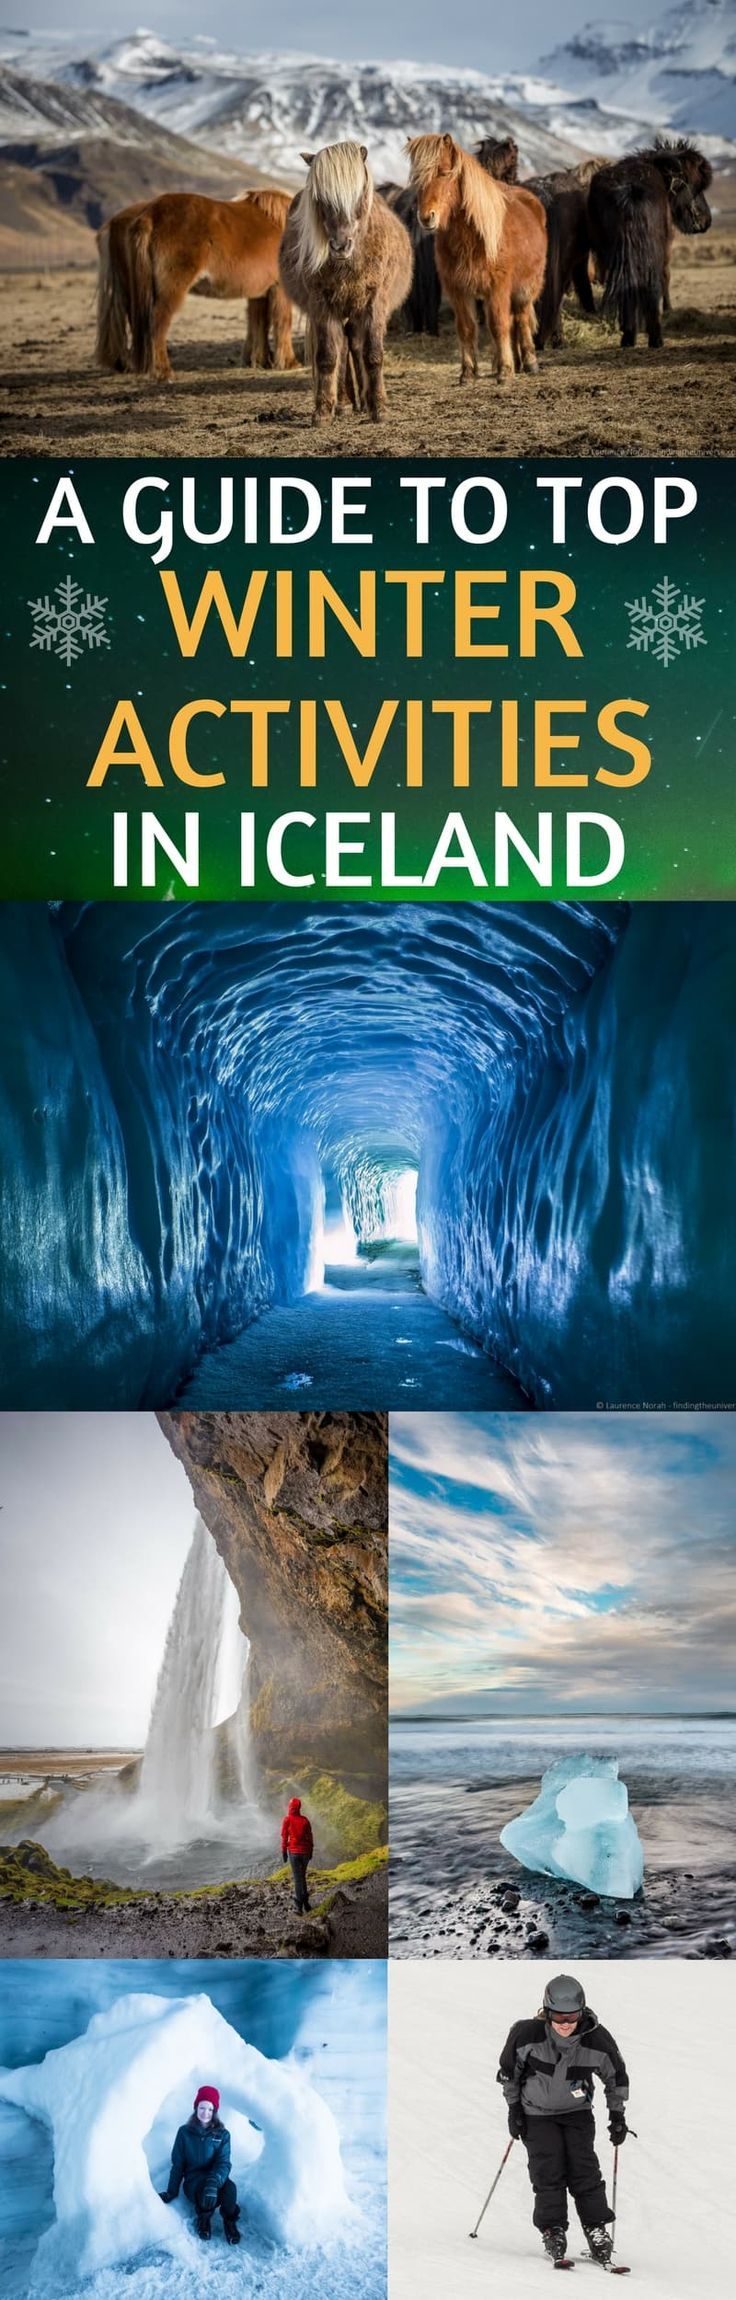 91 best Places I want to visit images on Pinterest | Iceland ...